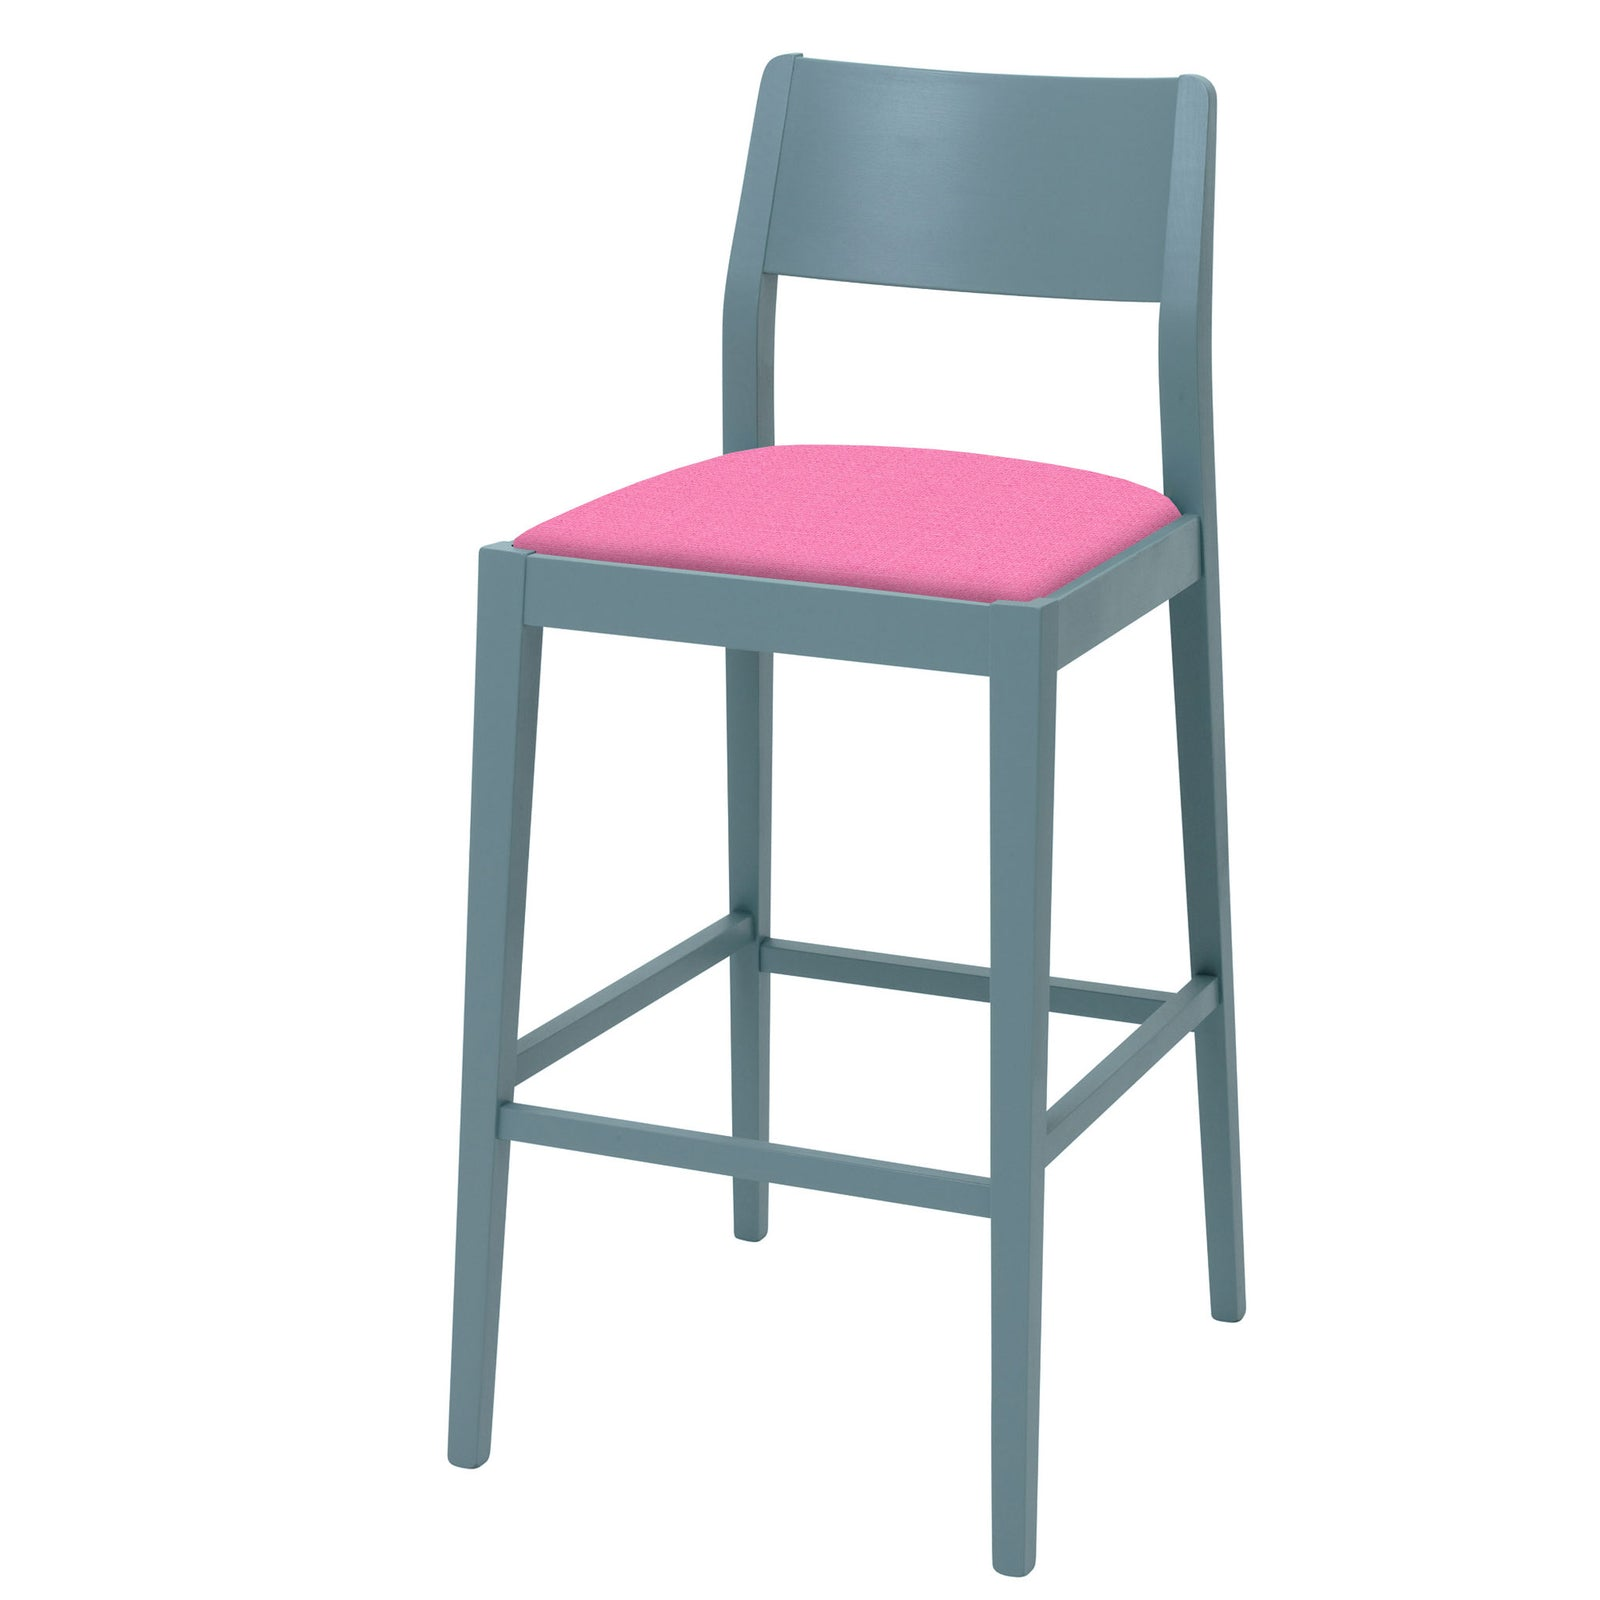 James Luxurious Bar Stool made-to-order in your chosen colourway.